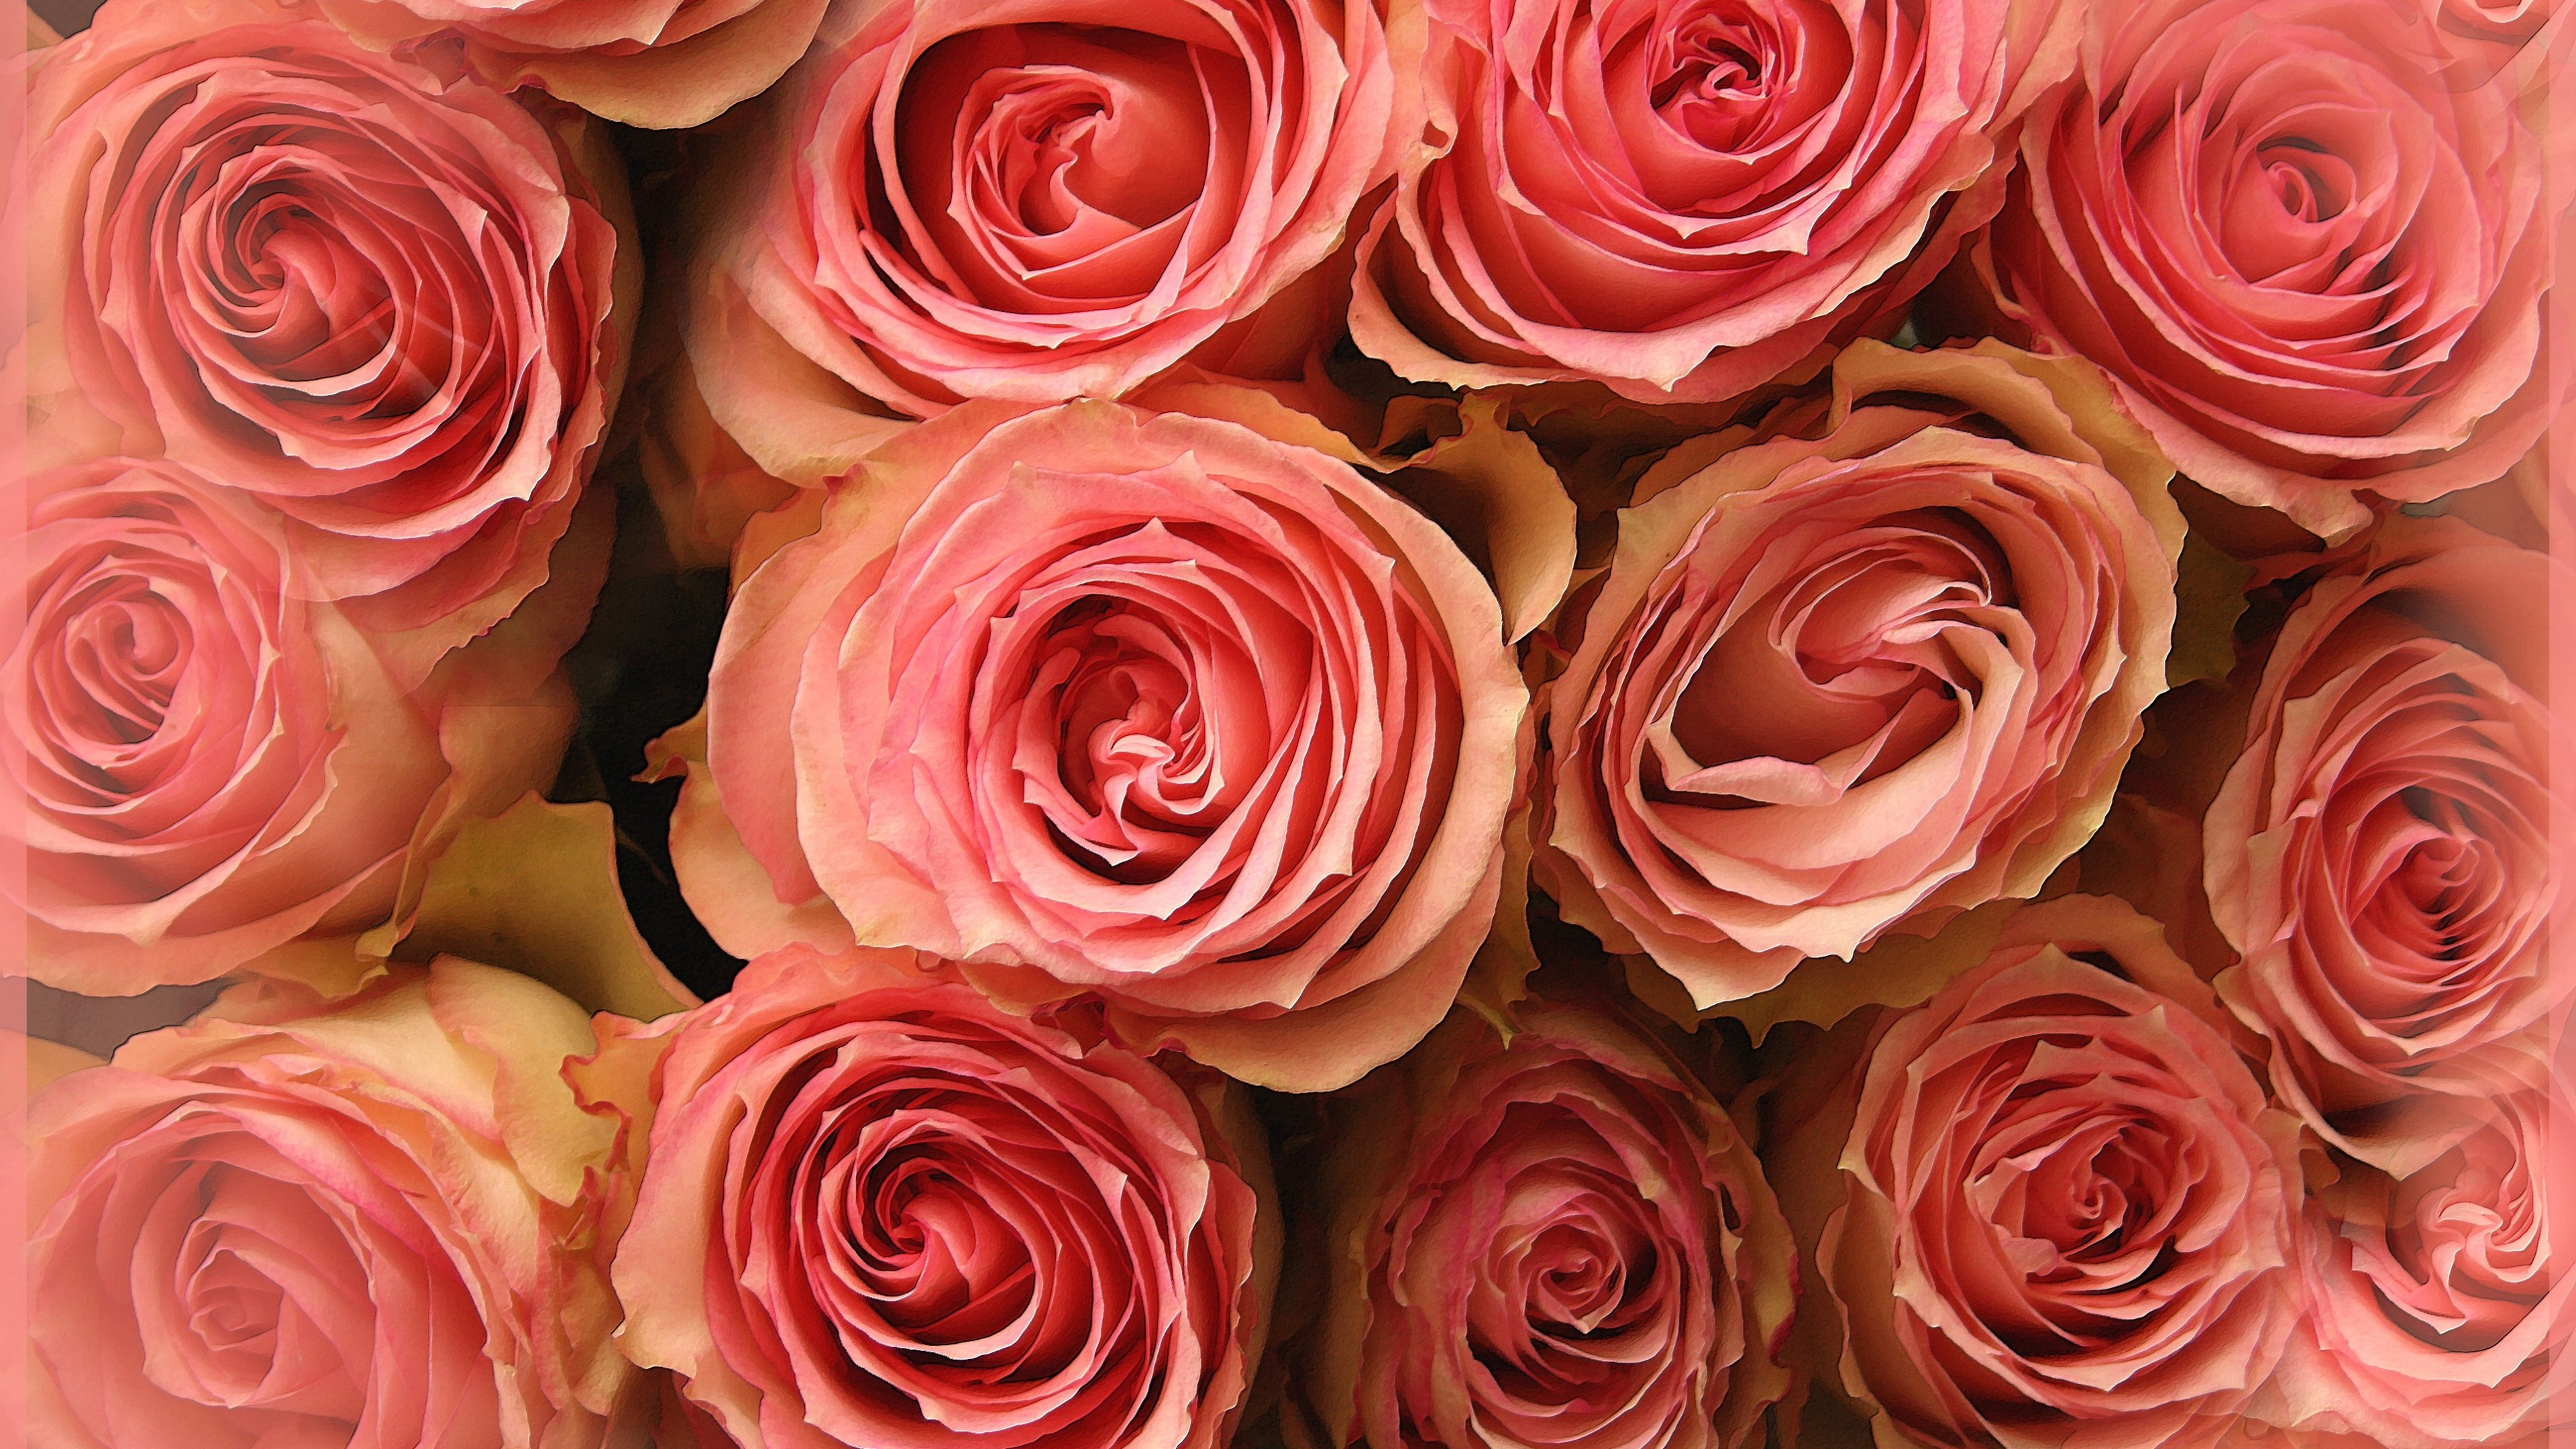 Res: 3840x2160, Flowers / Pink roses Wallpaper